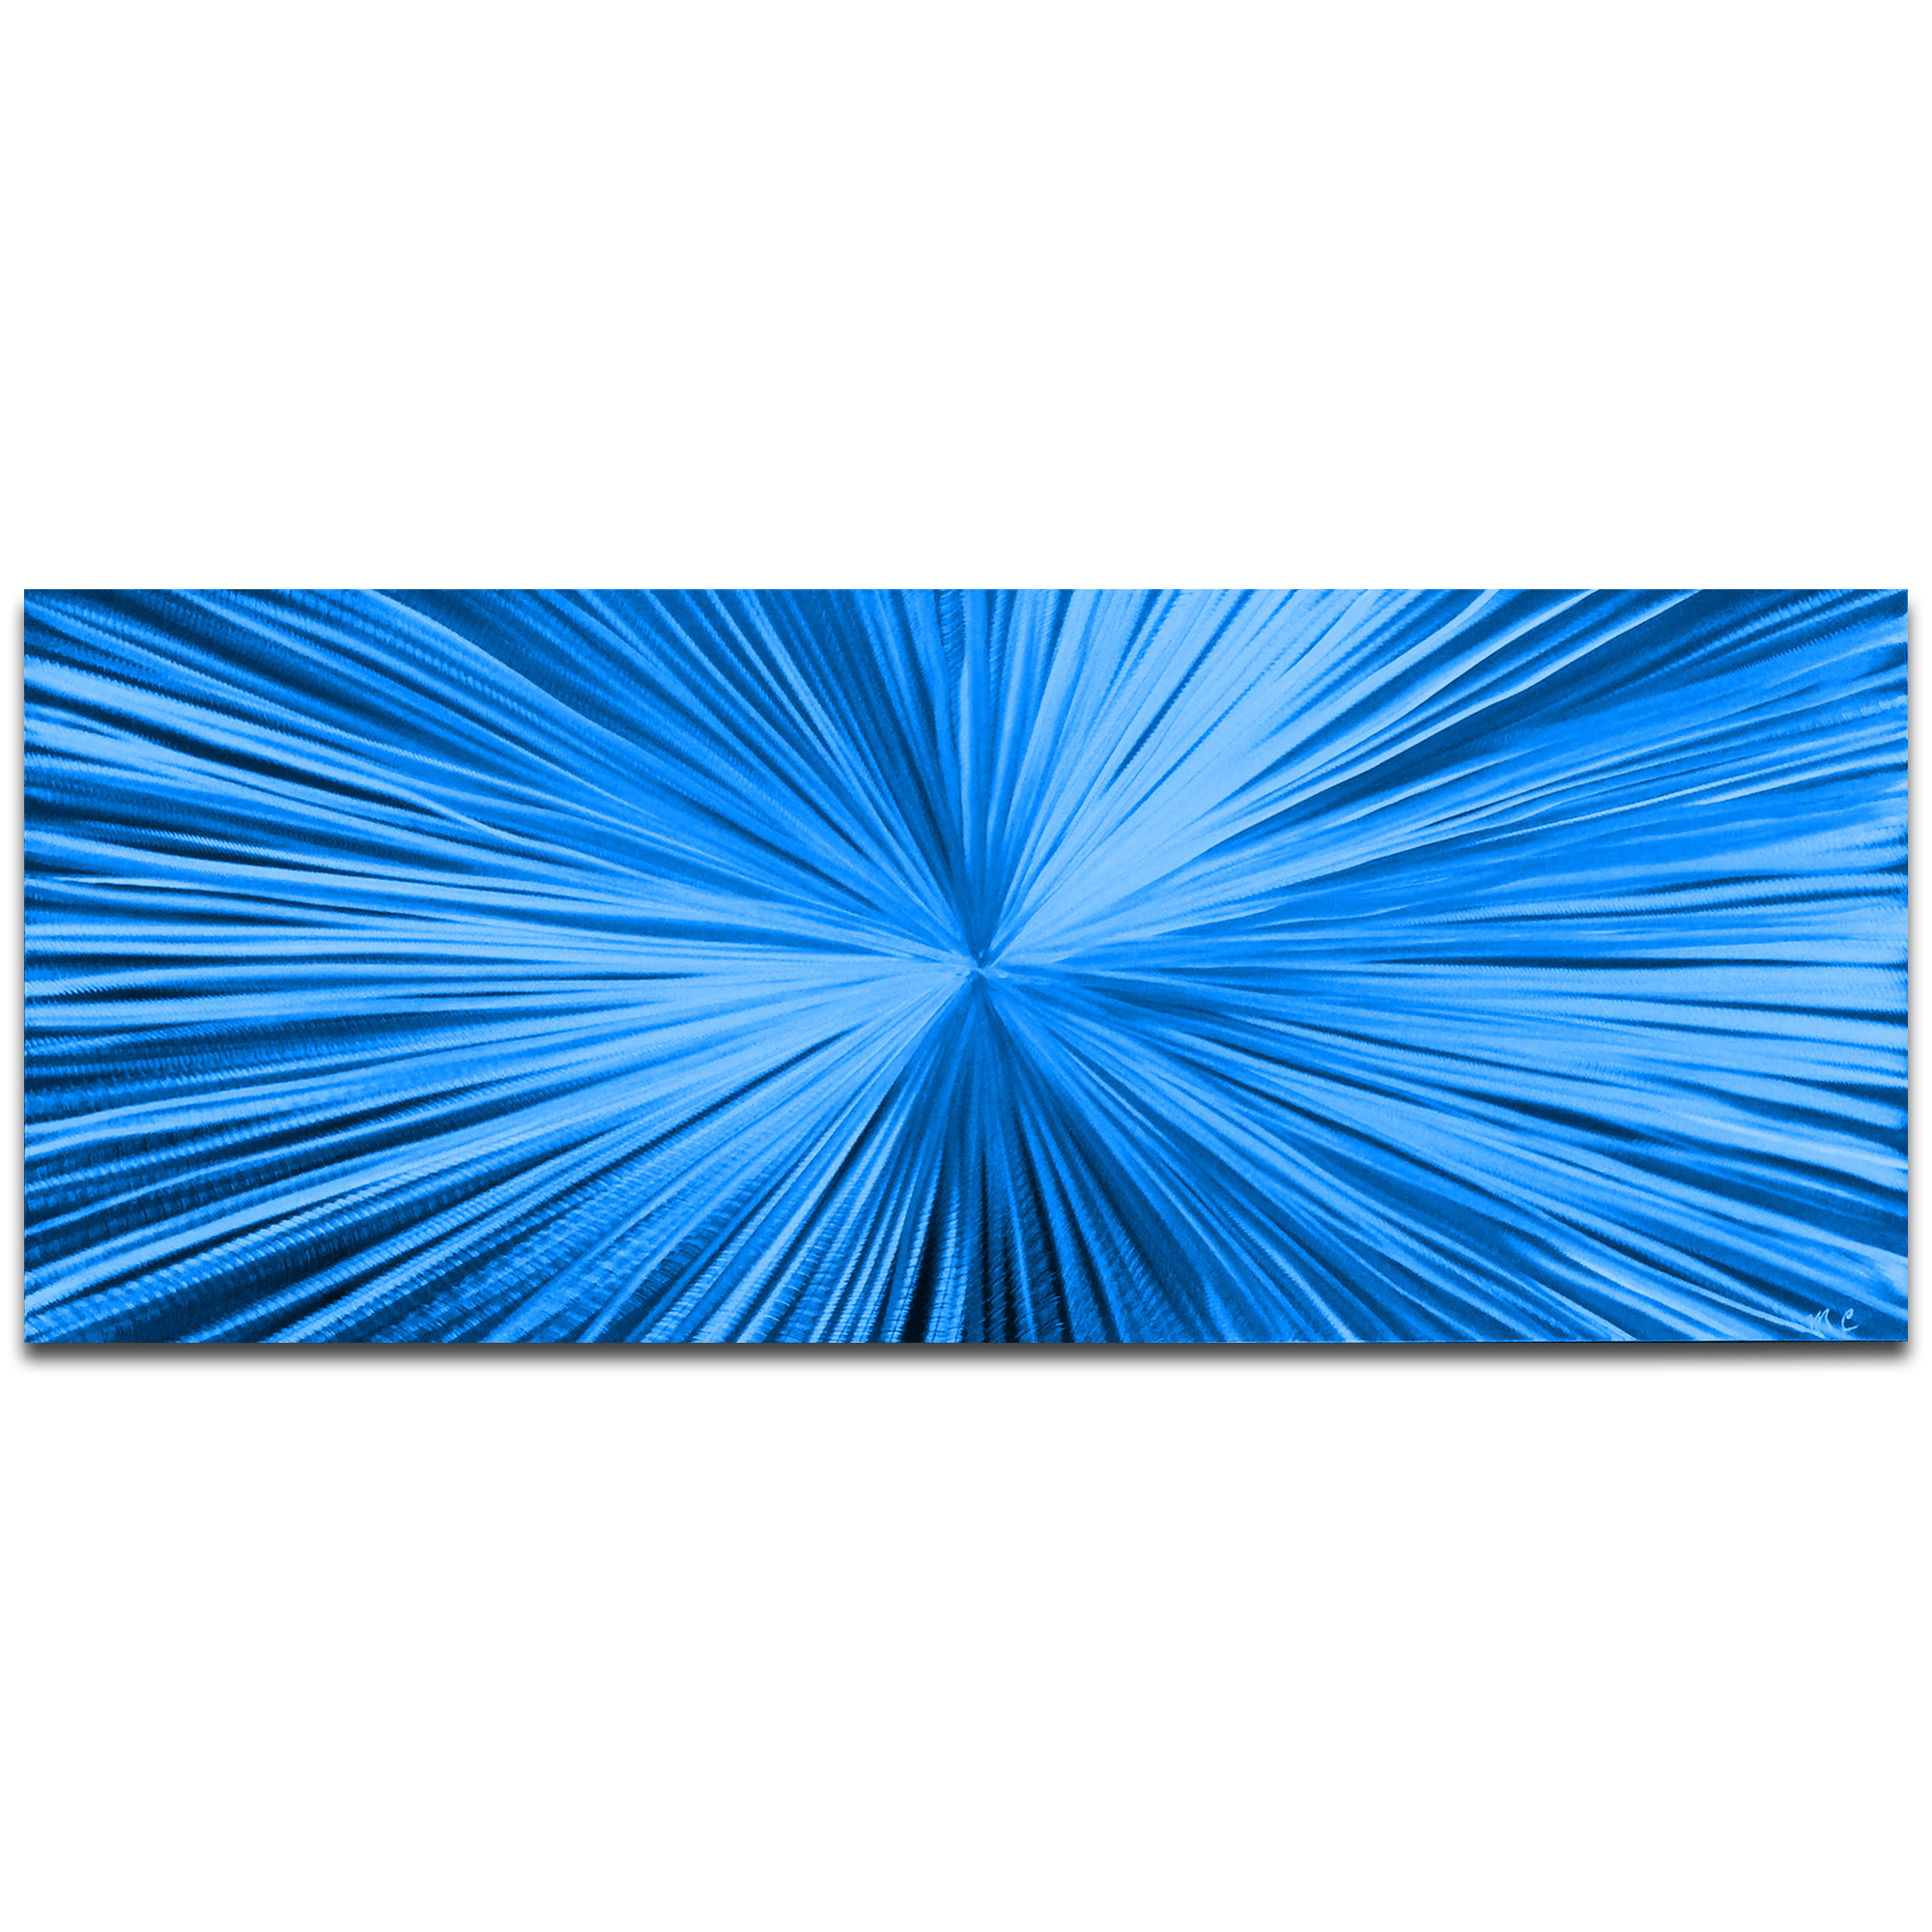 Helena Martin 'Starburst Blue' 60in x 24in Original Abstract Art on Ground and Painted Metal